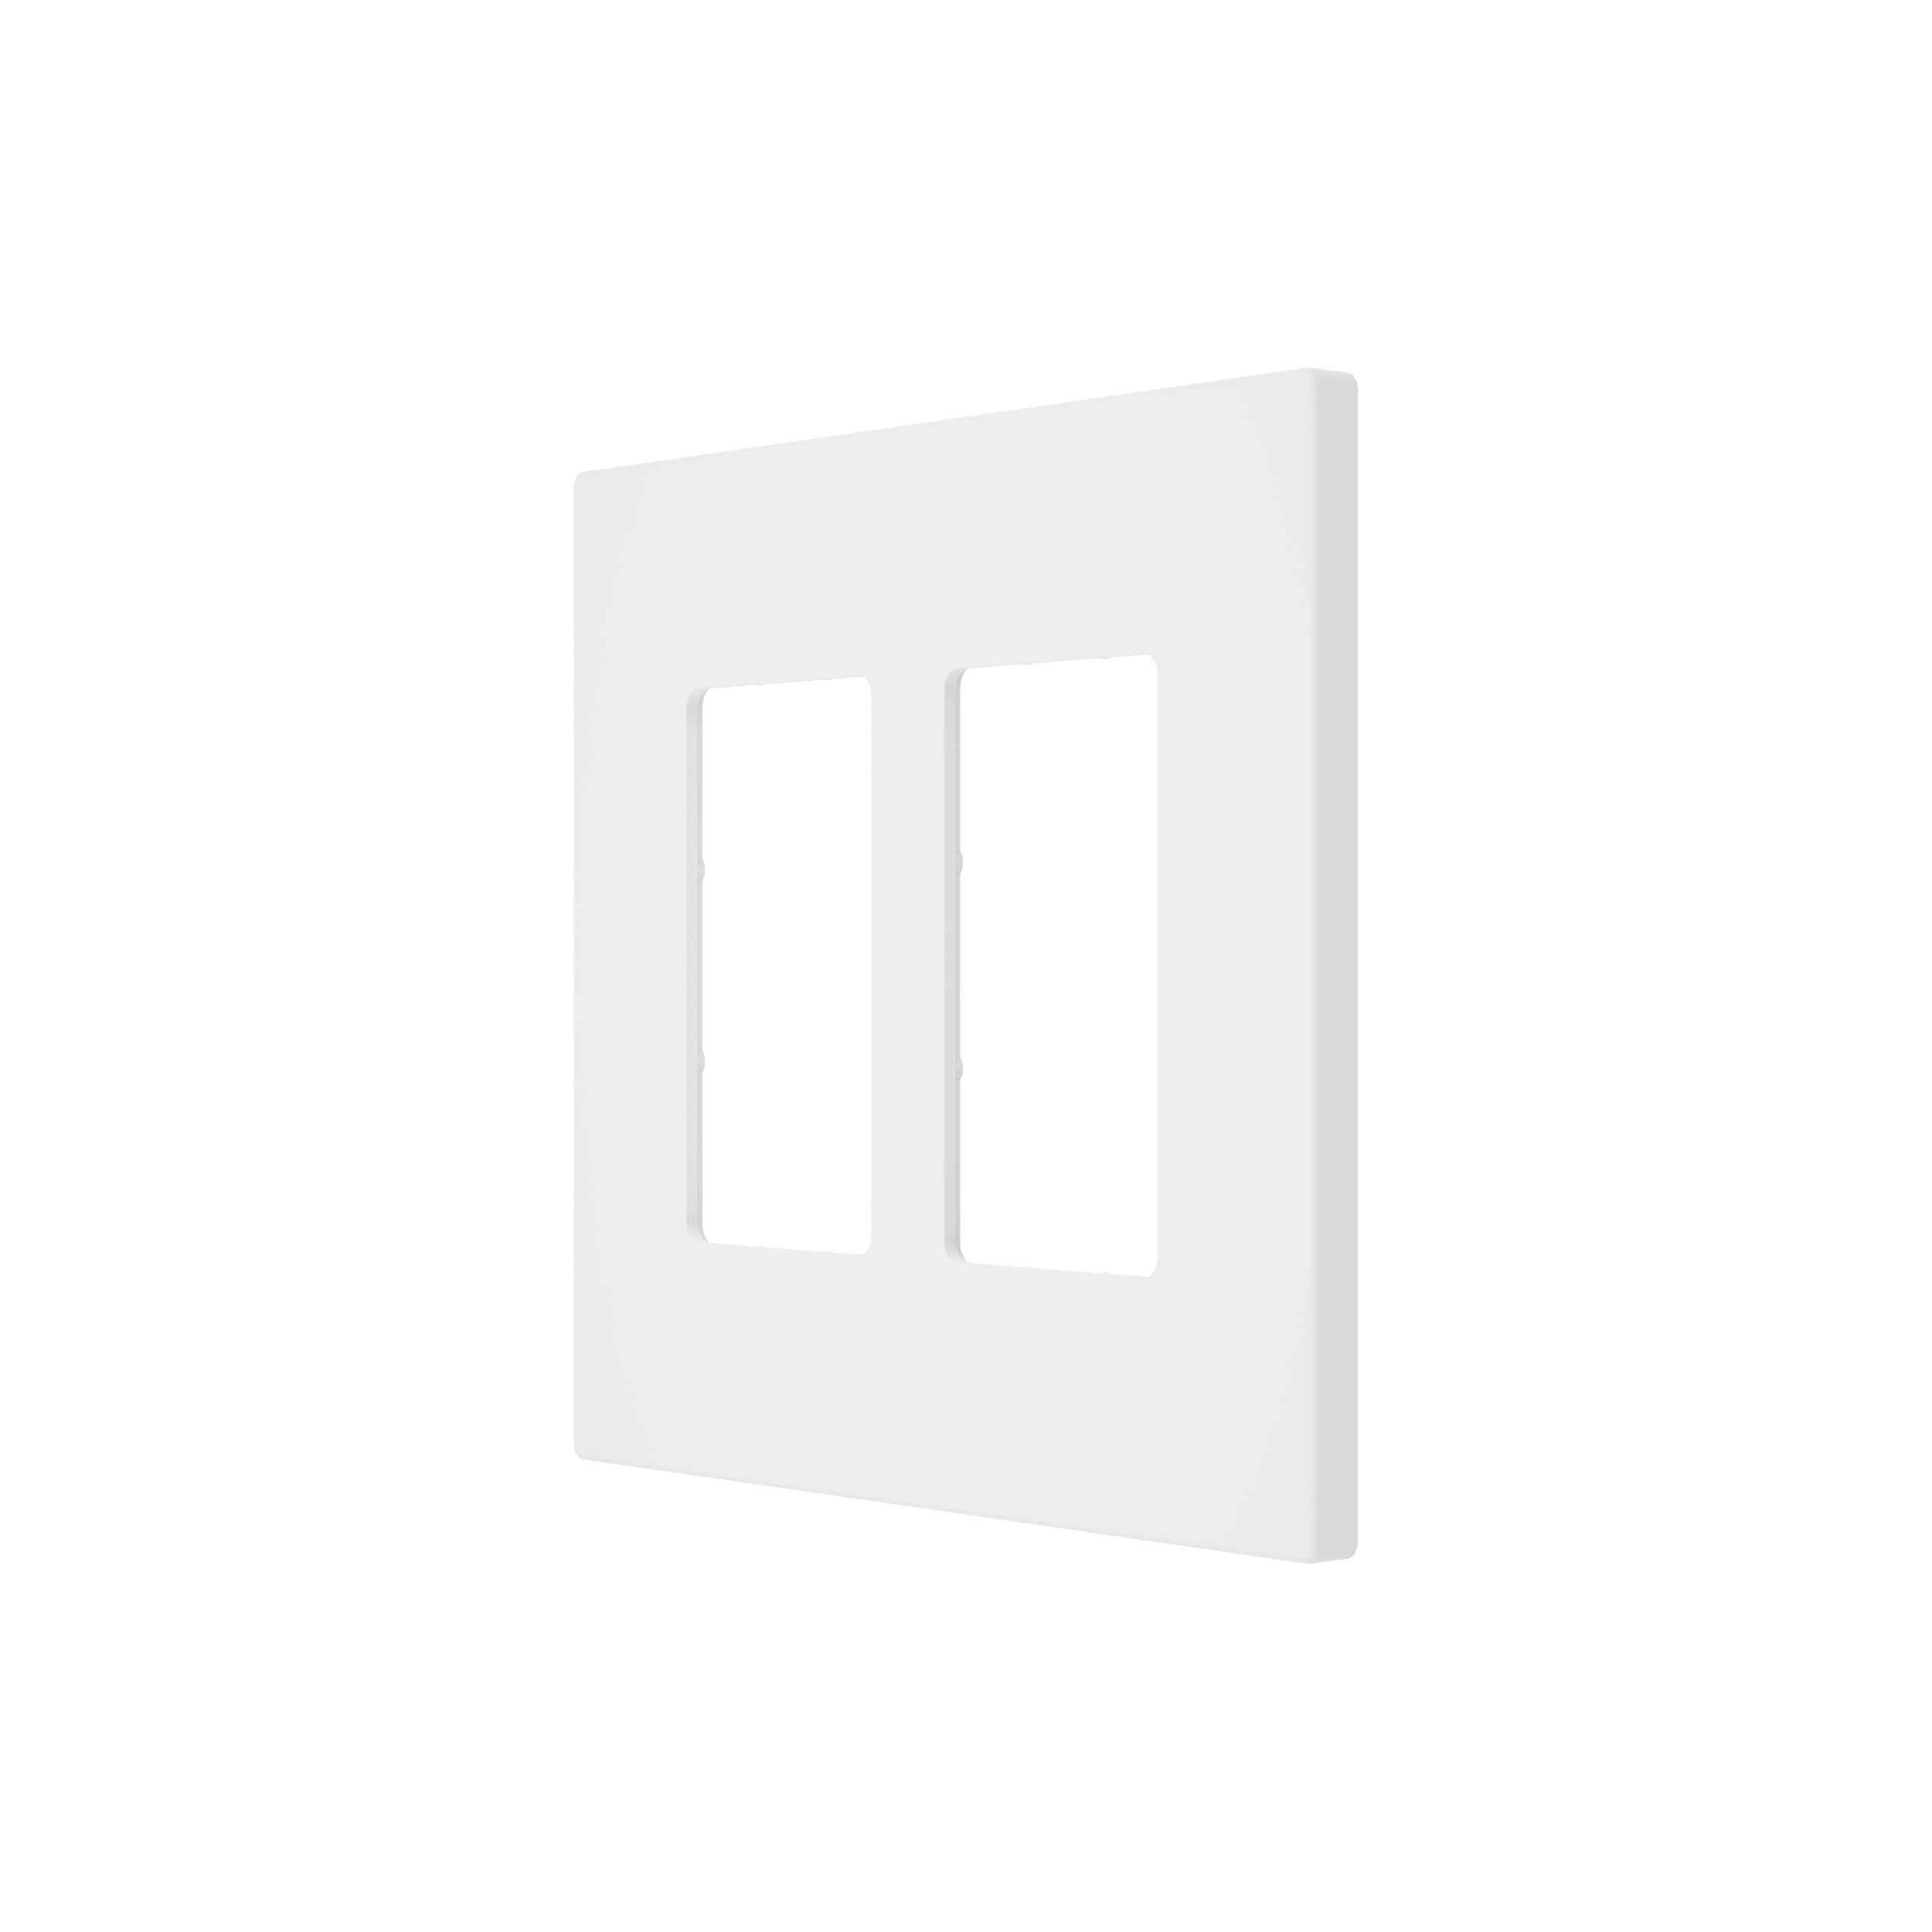 Wall Plate (2-Gang) 02.png